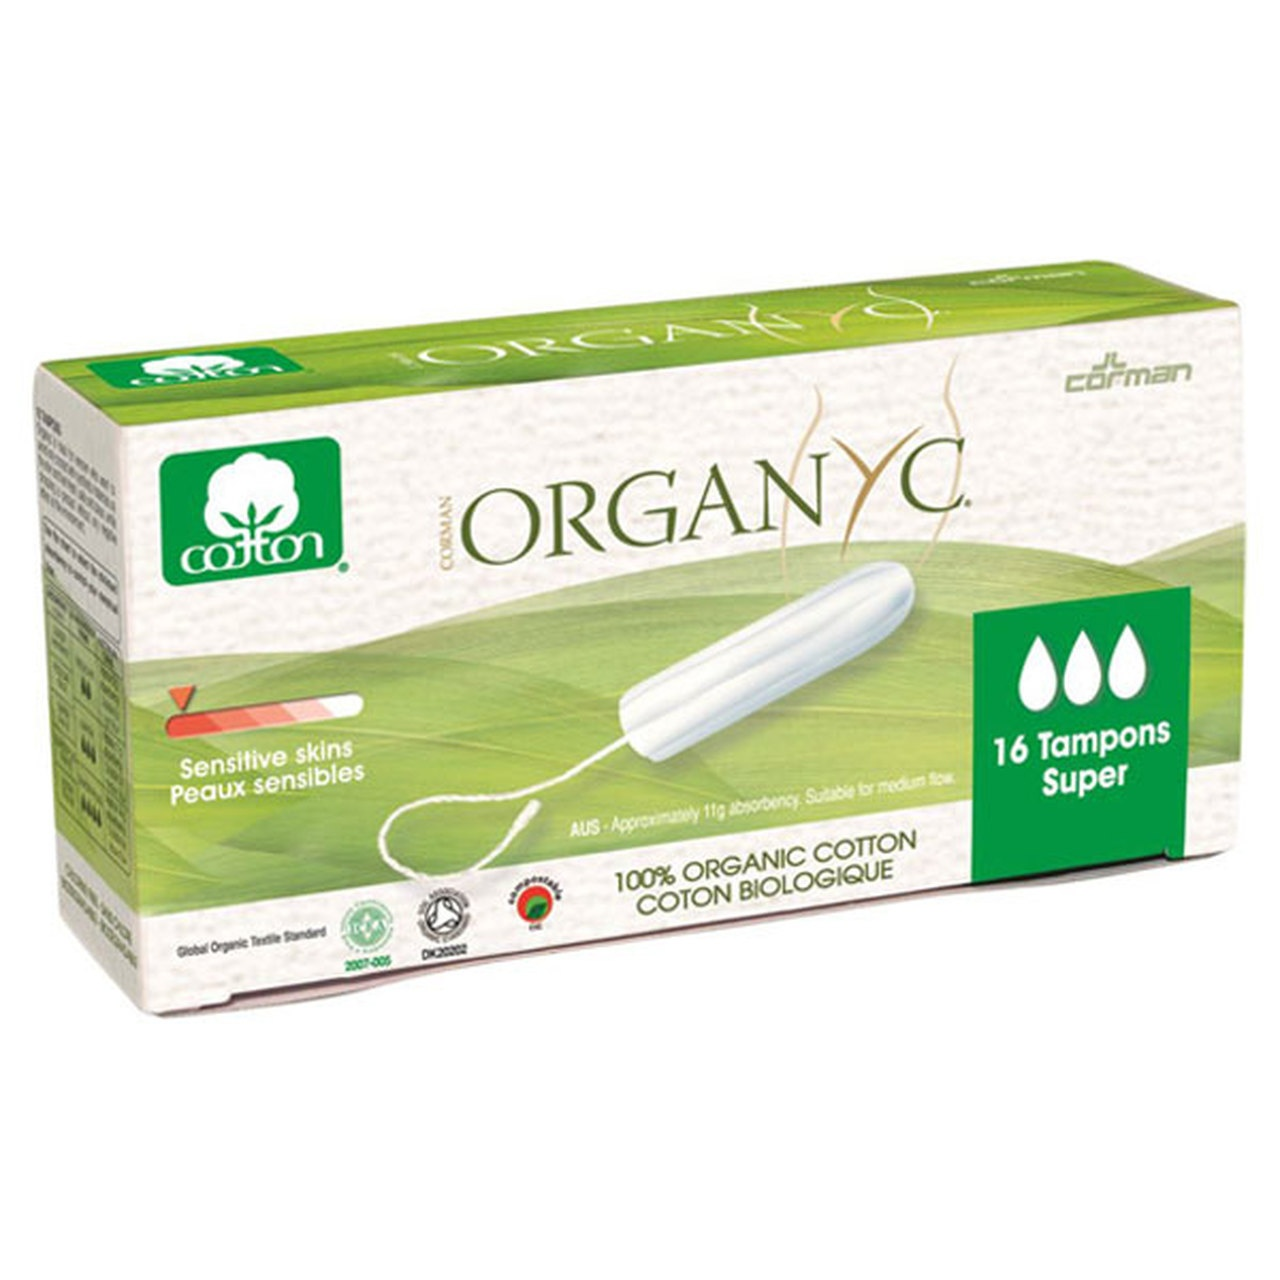 Organyc Organic Cotton Tampons Super - 16 per pack